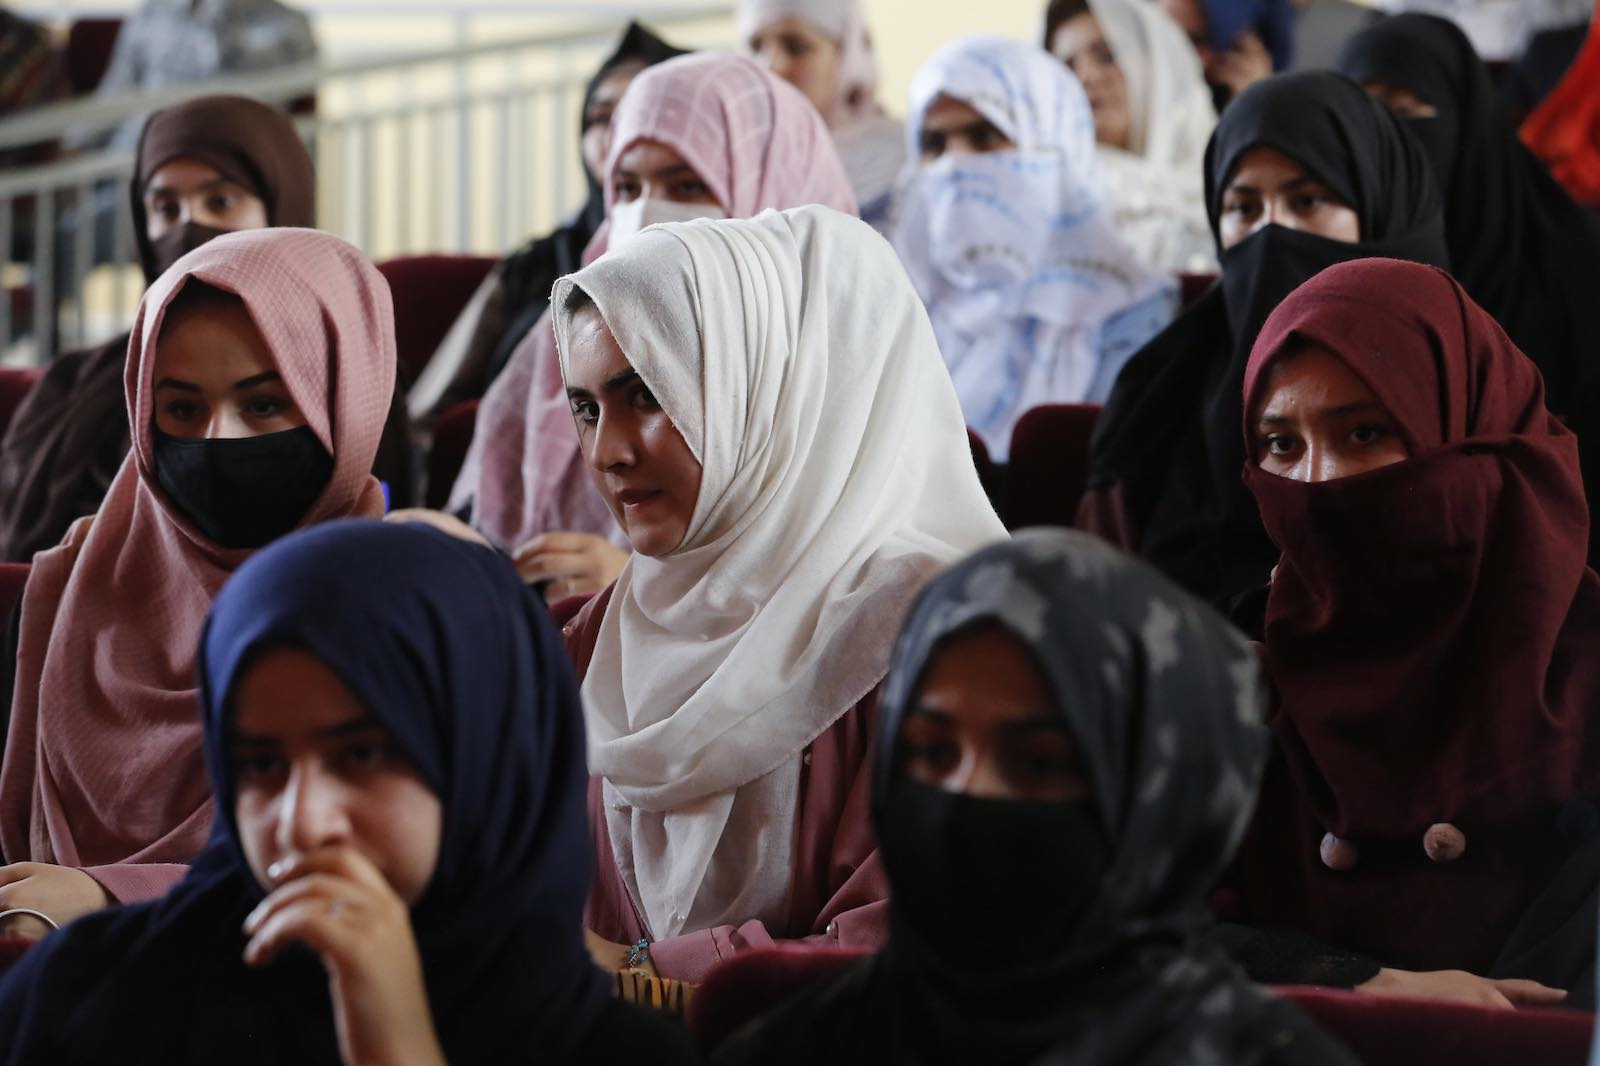 A human rights seminar on the role of women in ongoing peace efforts drew hundreds of participants In Kunduz, Afghanistan, September 2019 (Fardin Waezi/UNAMA/Flickr)